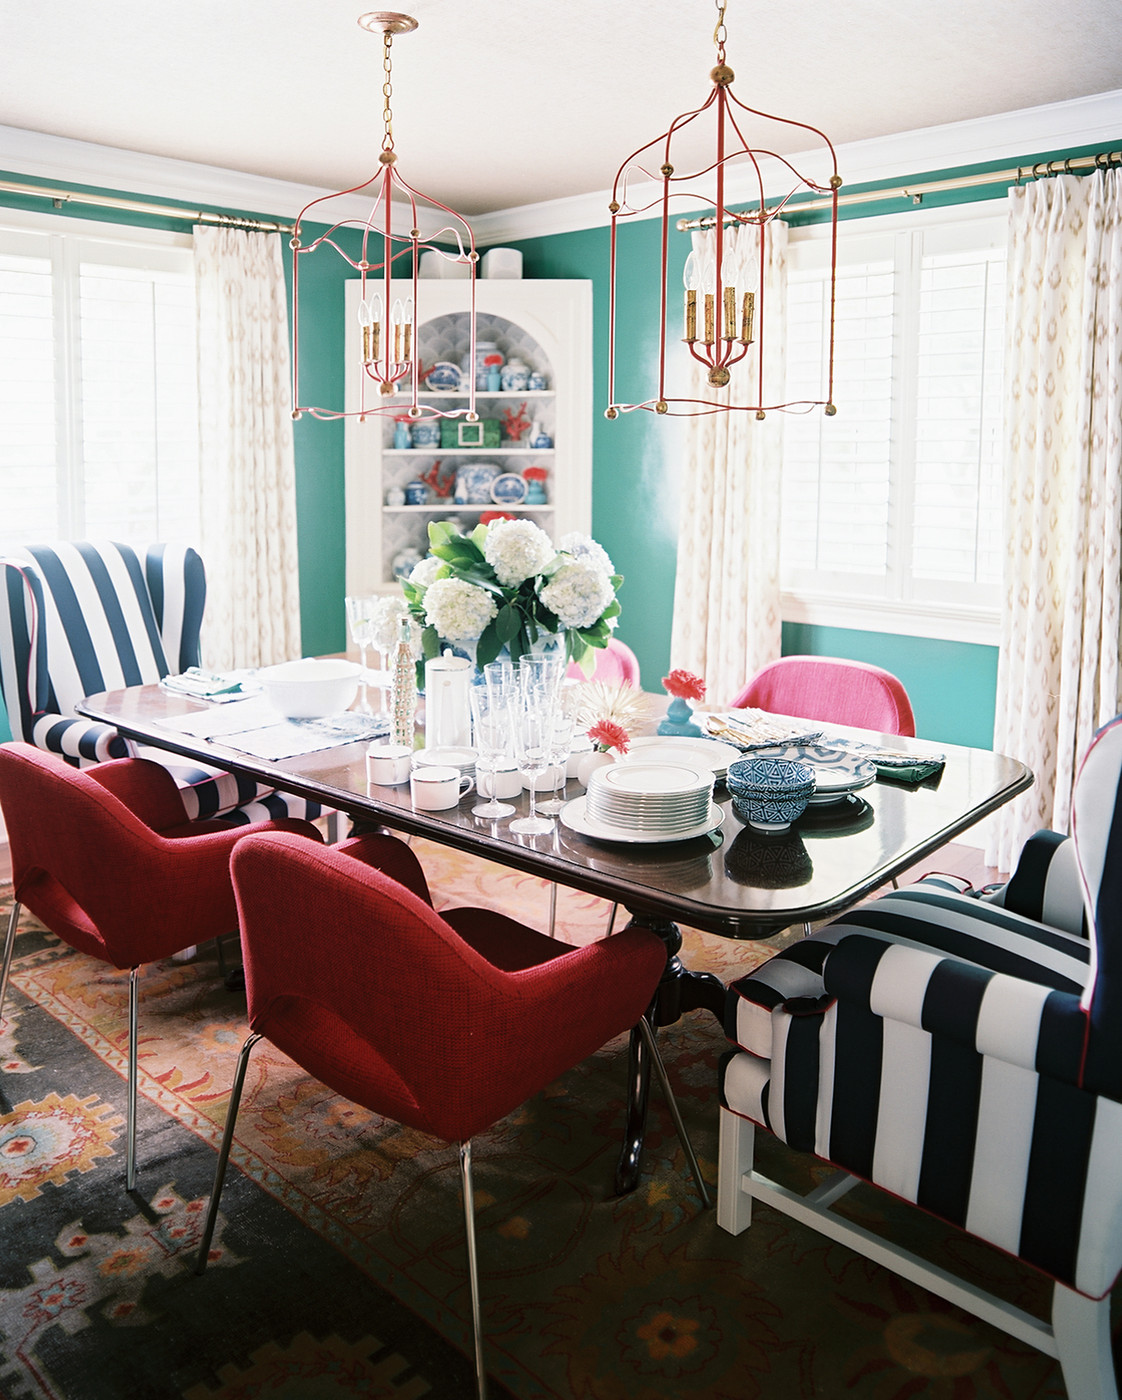 Teal dining room photos design ideas remodel and decor for Teal dining room decorating ideas